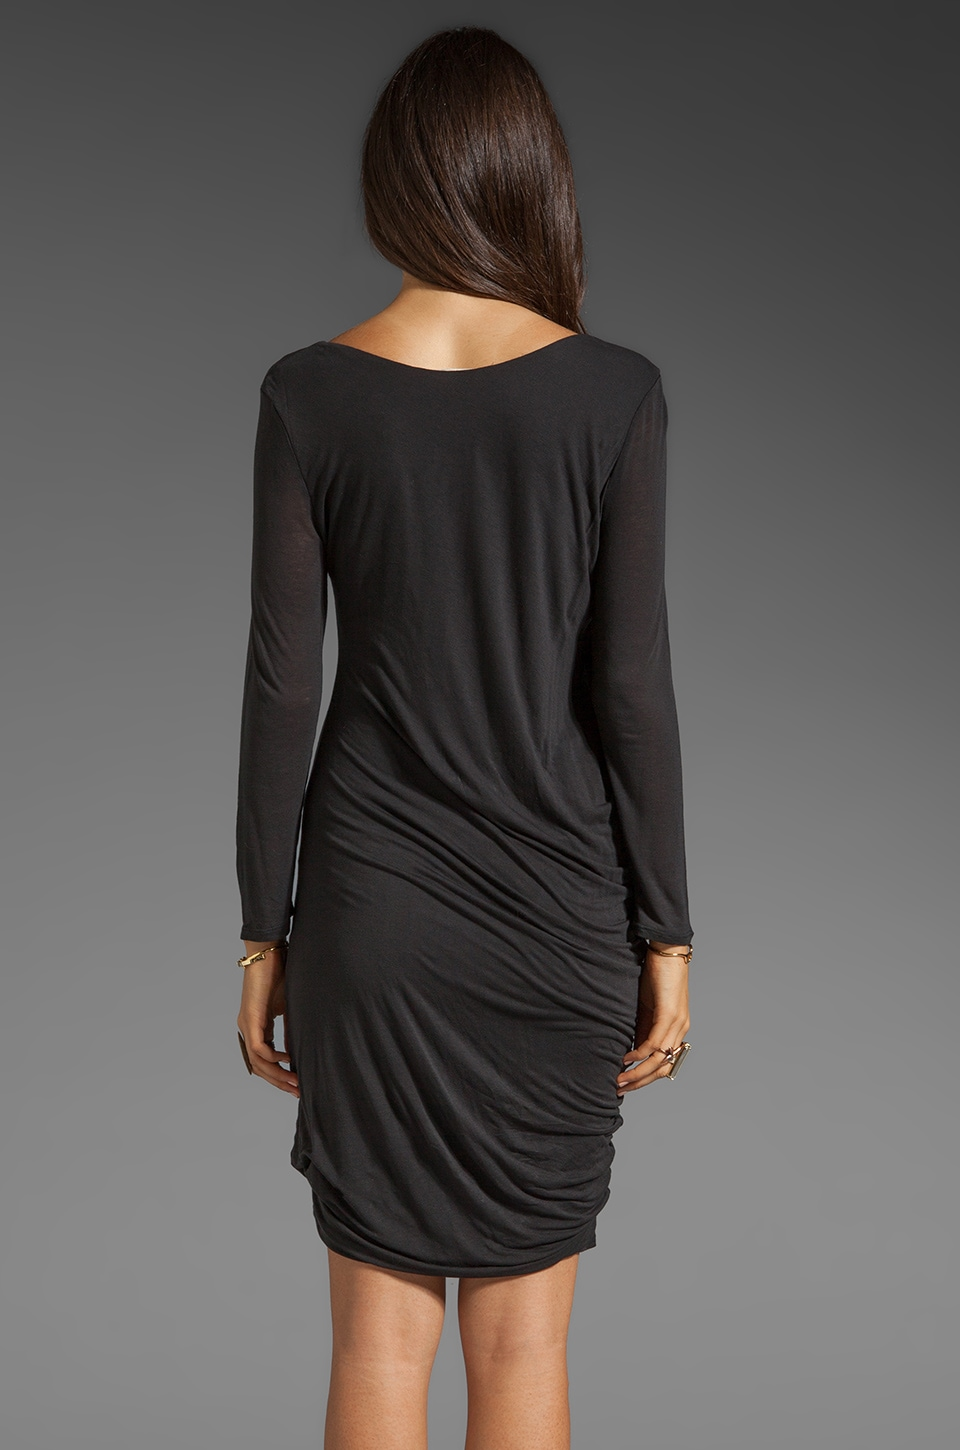 Soft Joie Avrele Drape Dress in Caviar